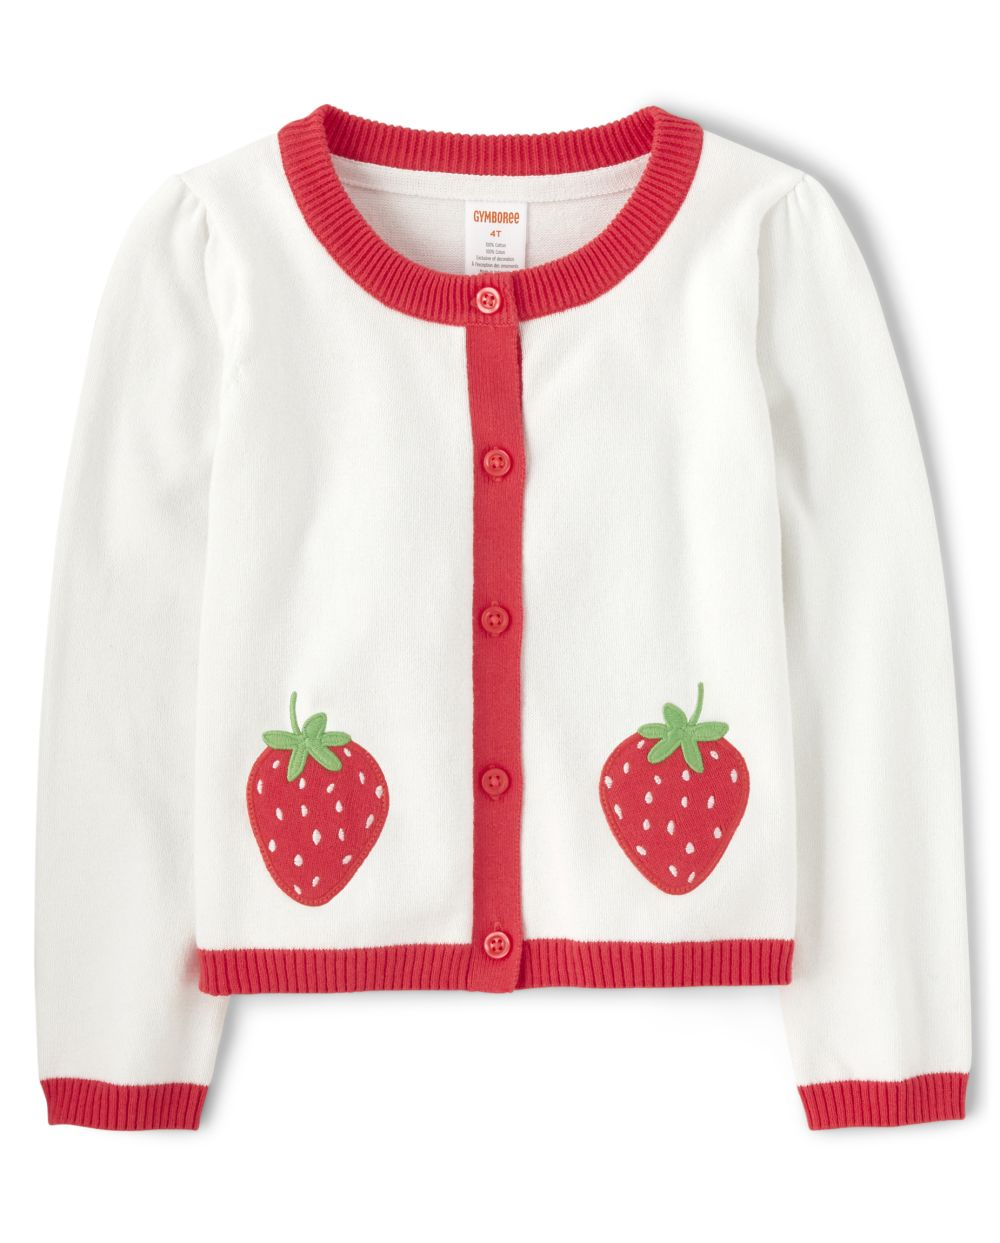 Girls Applique Cardigan - Strawberry Patch